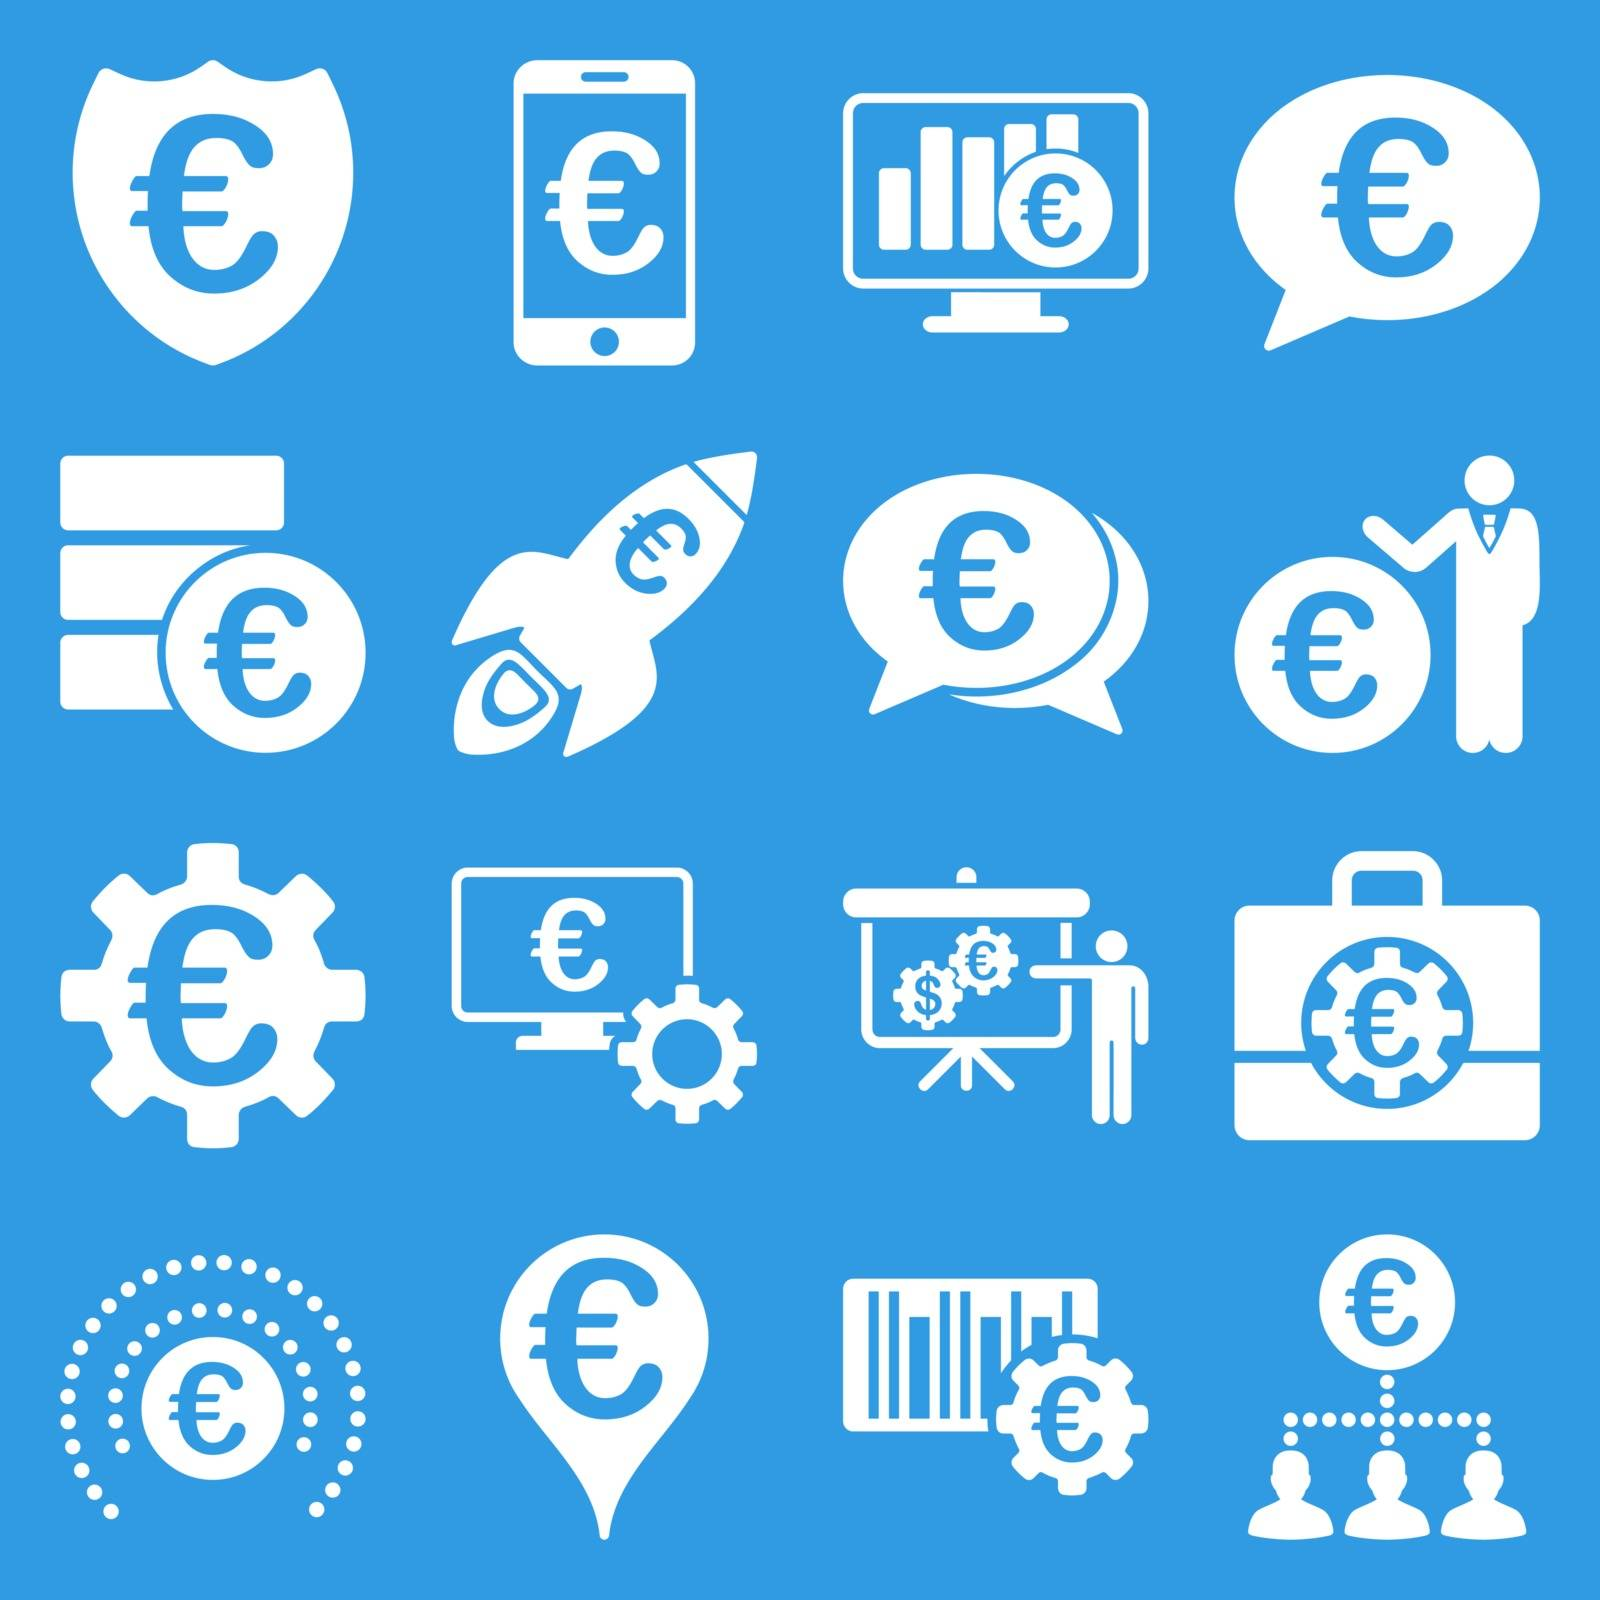 Euro banking business and service tools icons. These flat icons use white. Images are isolated on a blue background. Angles are rounded.